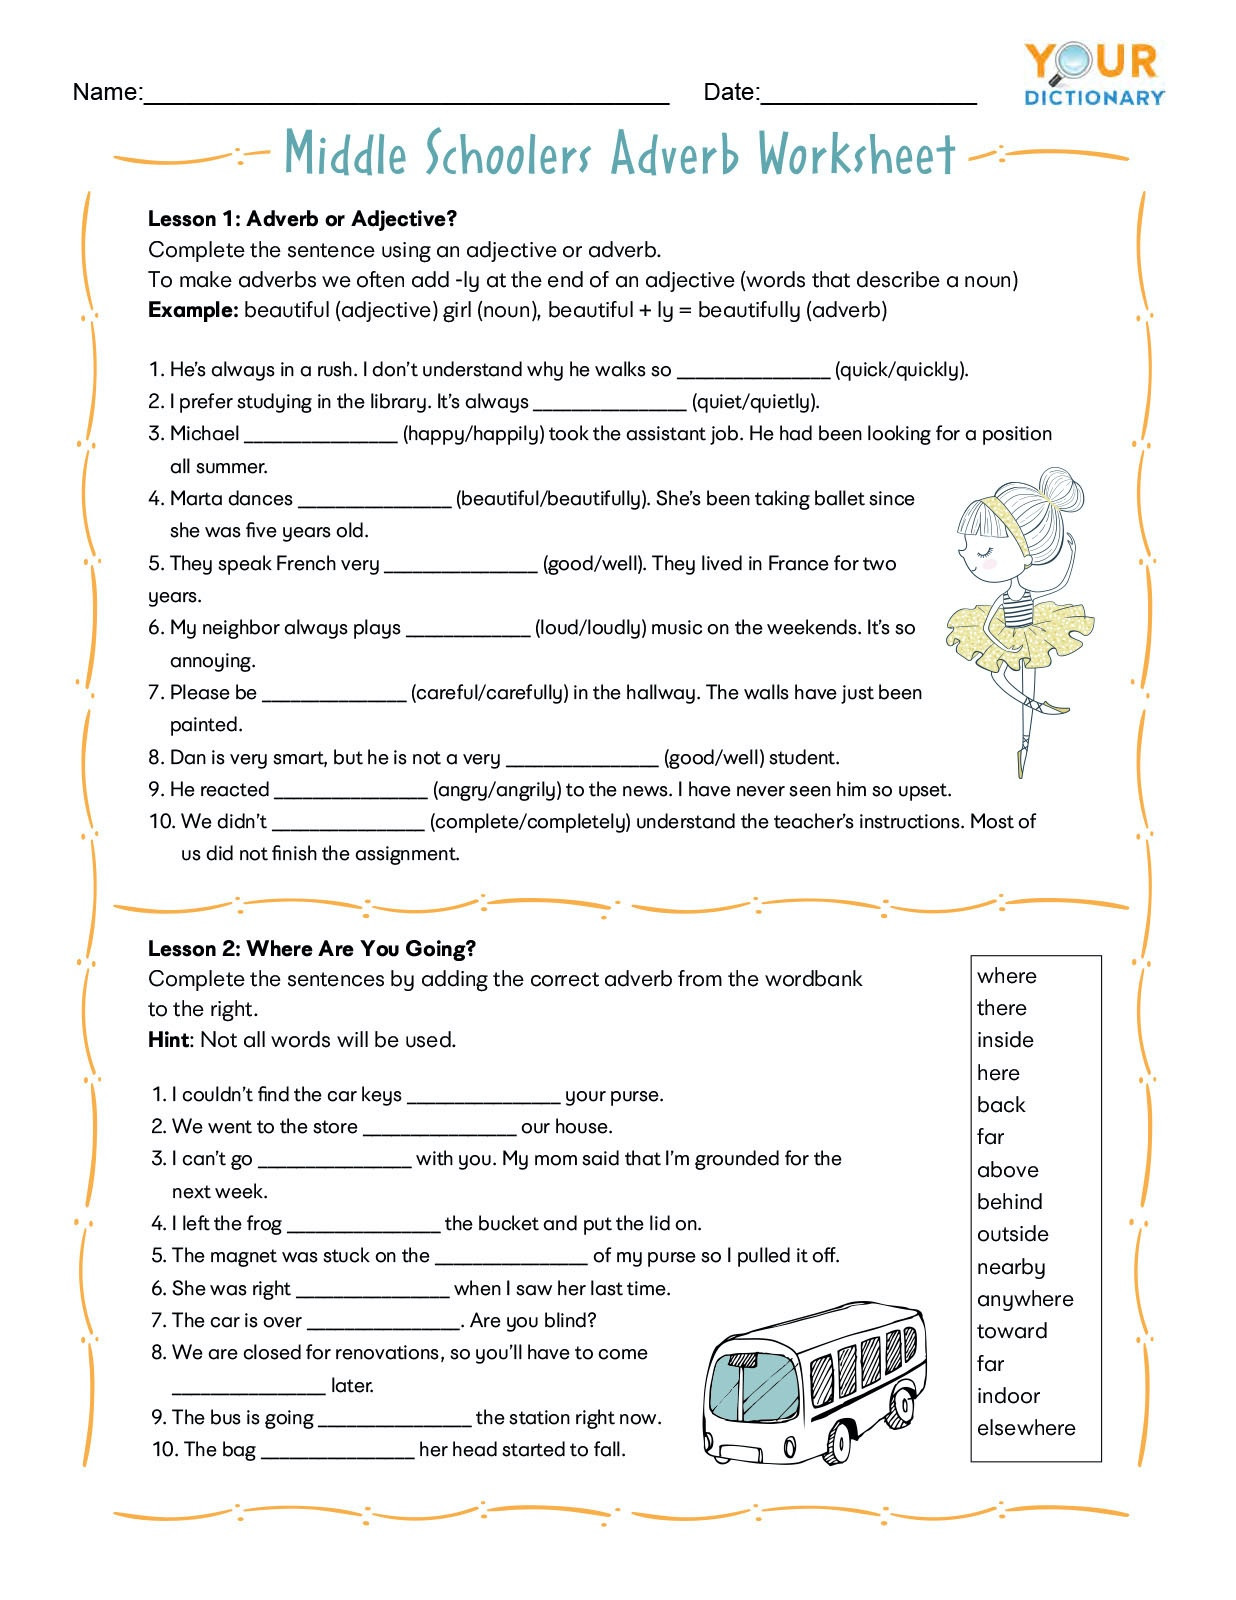 4th Grade Grammar Worksheets Pdf Adverb Worksheets for Elementary and Middle School